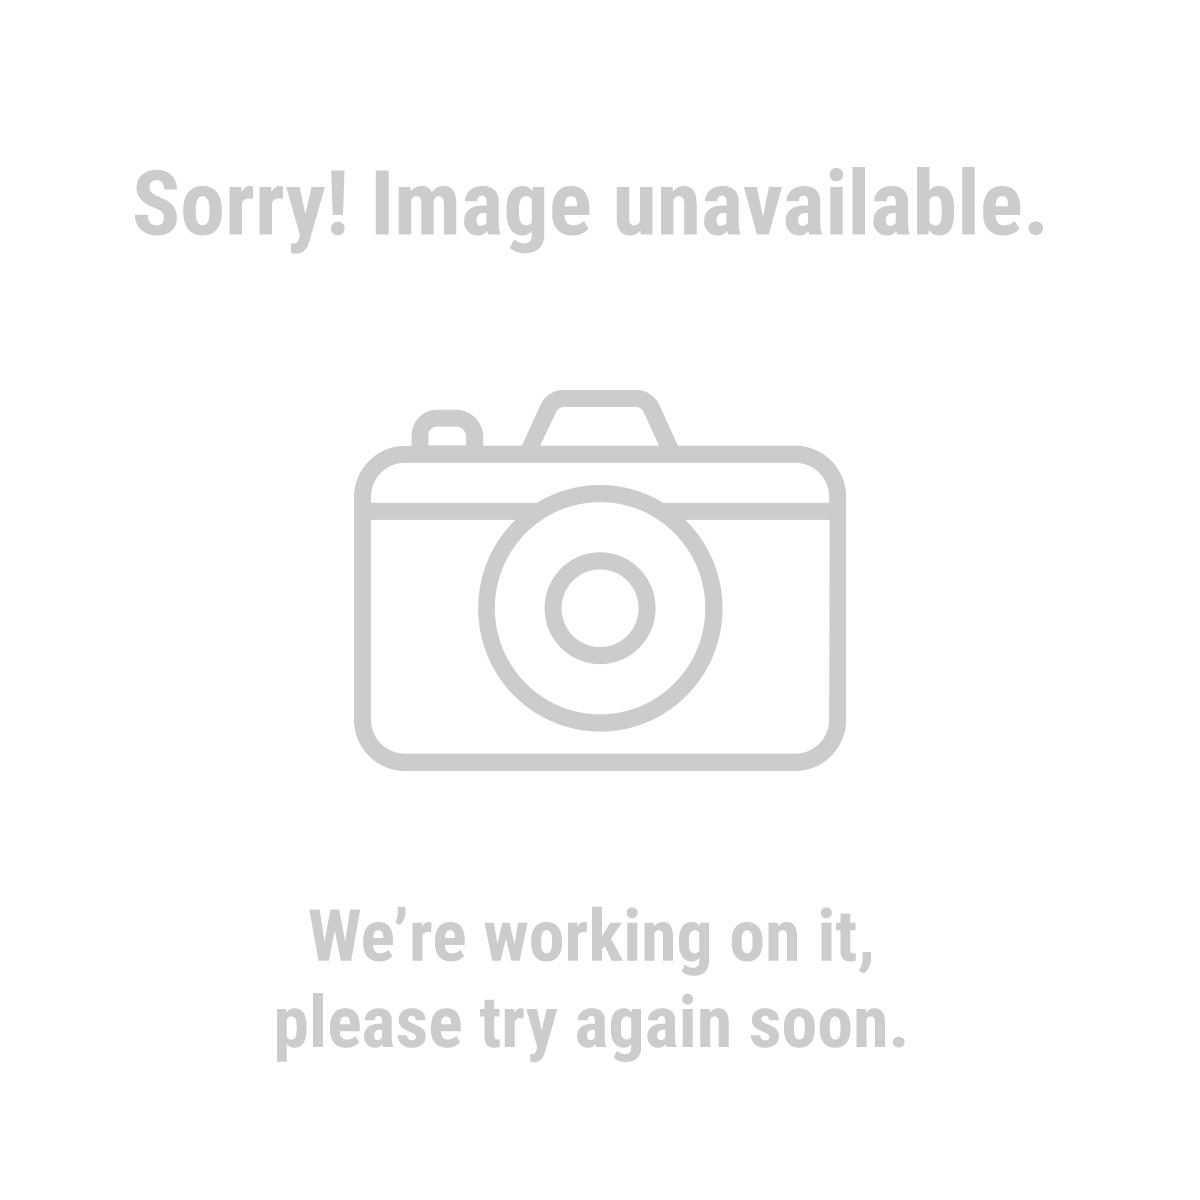 Pittsburgh® Automotive 69563 3 Piece Plastic Spreader Set